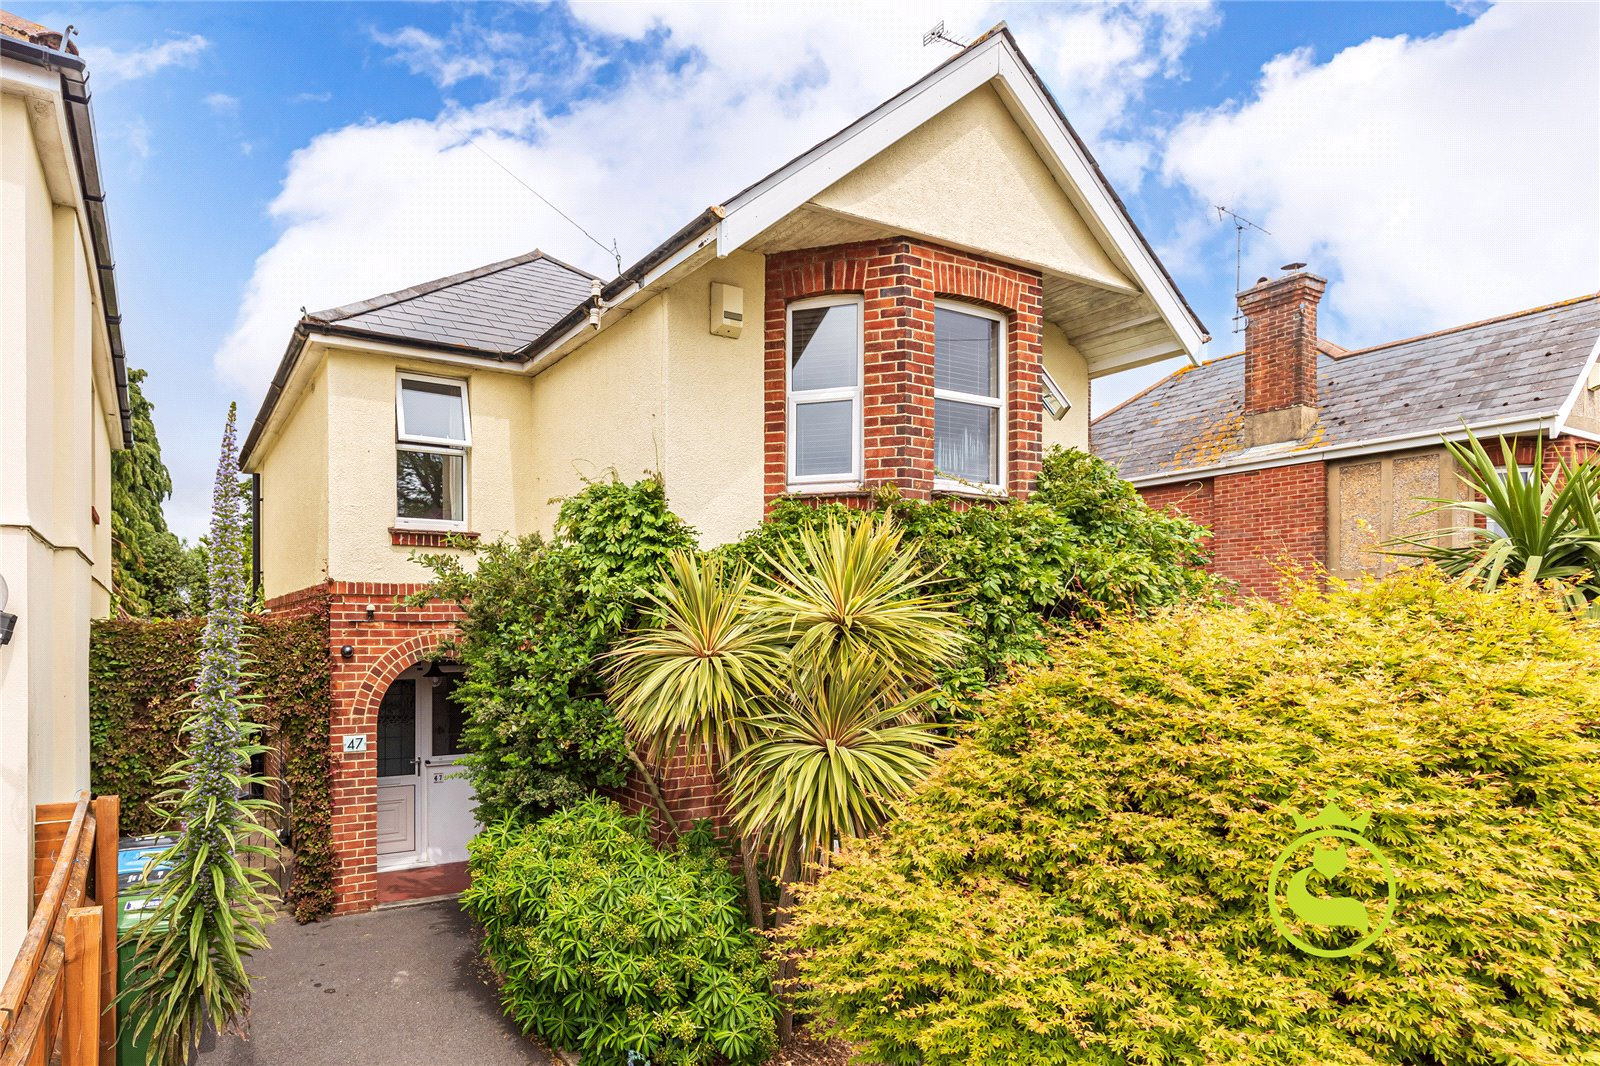 3 bed house for sale in Chatsworth Road, Parkstone  - Property Image 1